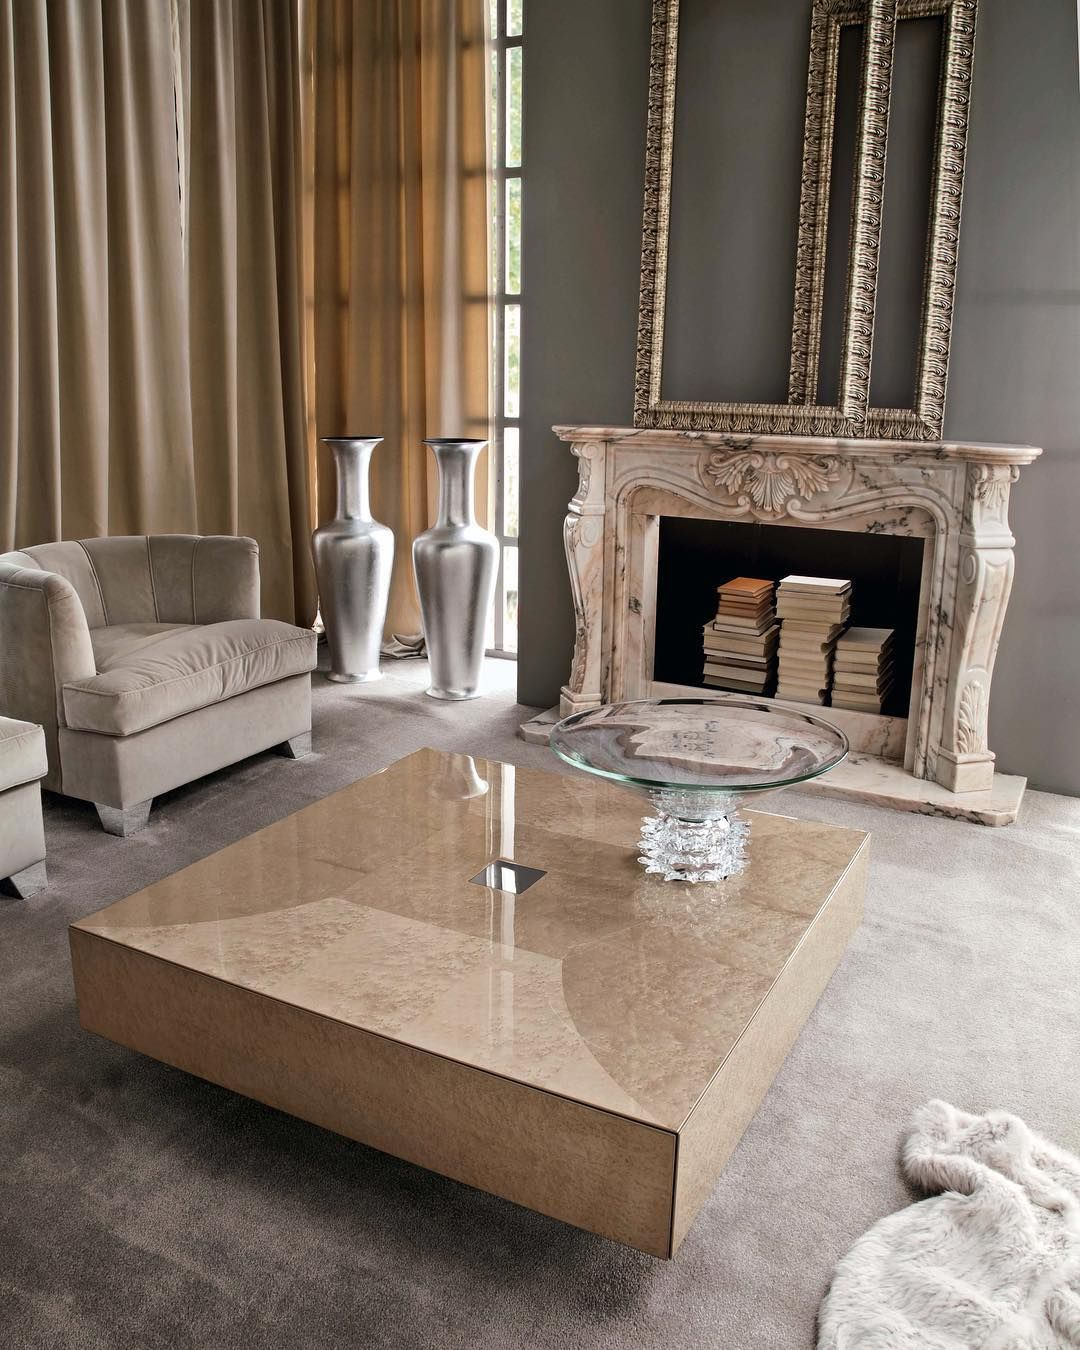 Giorgio Collection An Exclusive Fireplace Inevitably Draws Attention And Serves As A Focal Point In